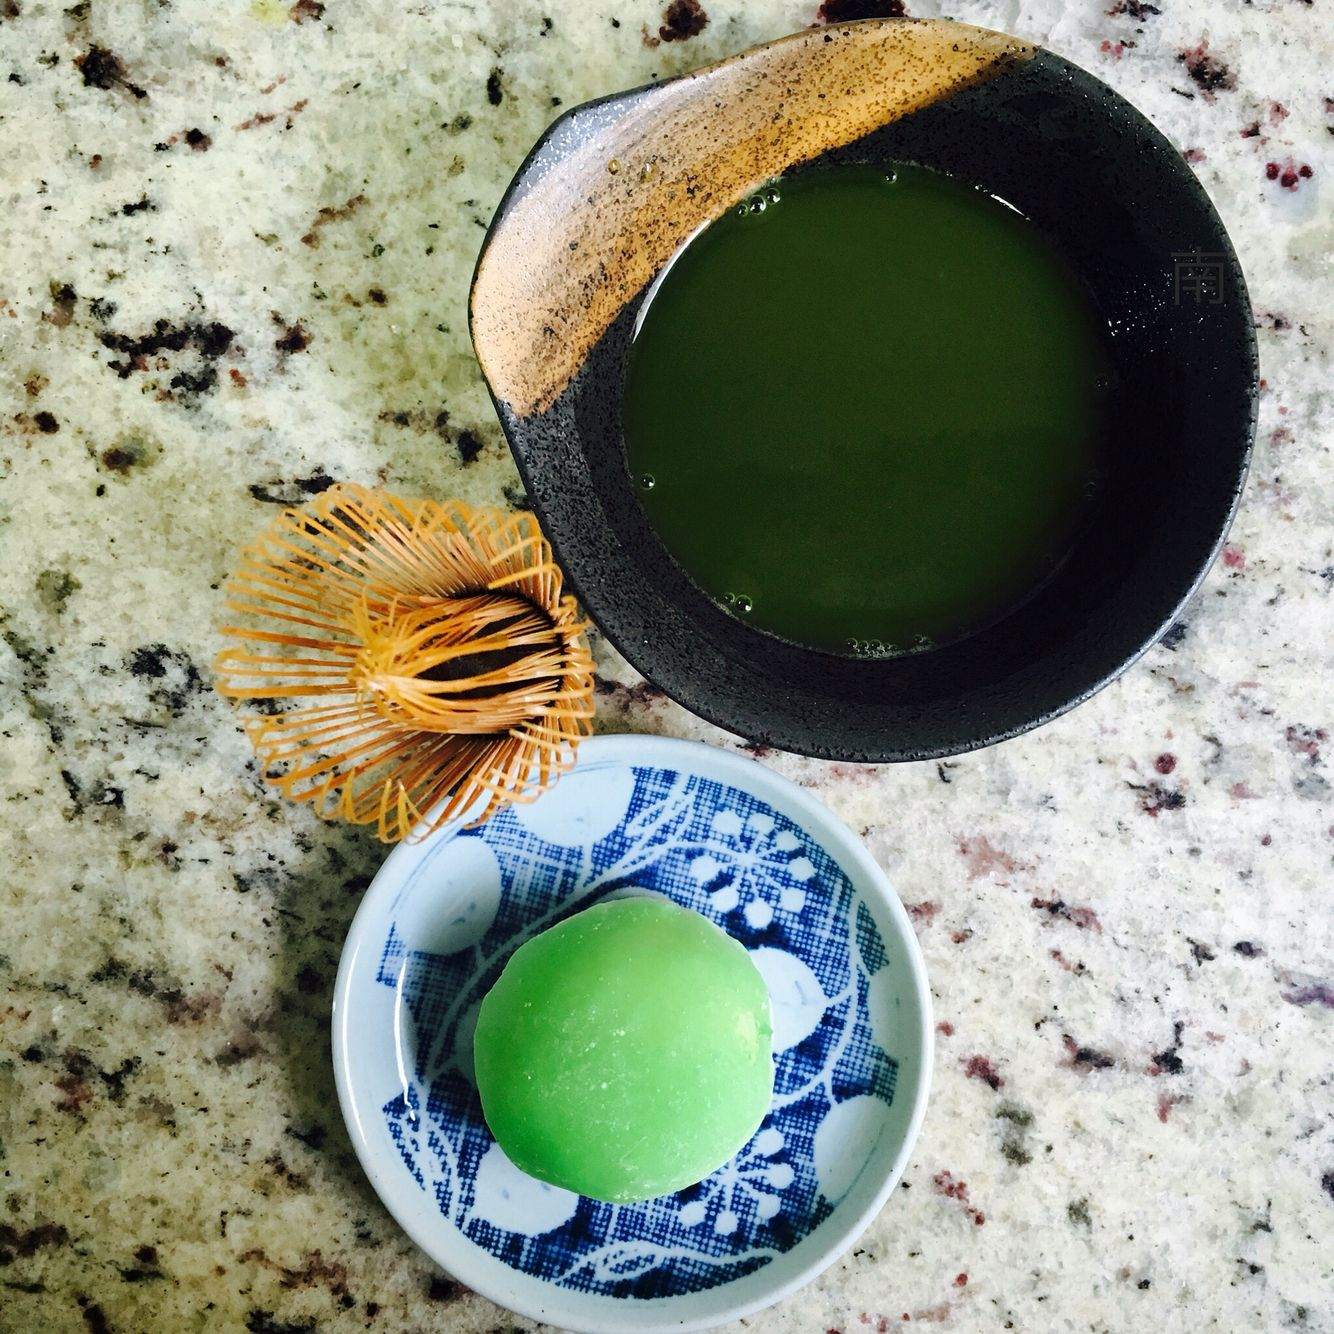 Matcha and mochi (rice cake) Naturally blessed with nutrients, matcha is Japan's most traditional green tea.